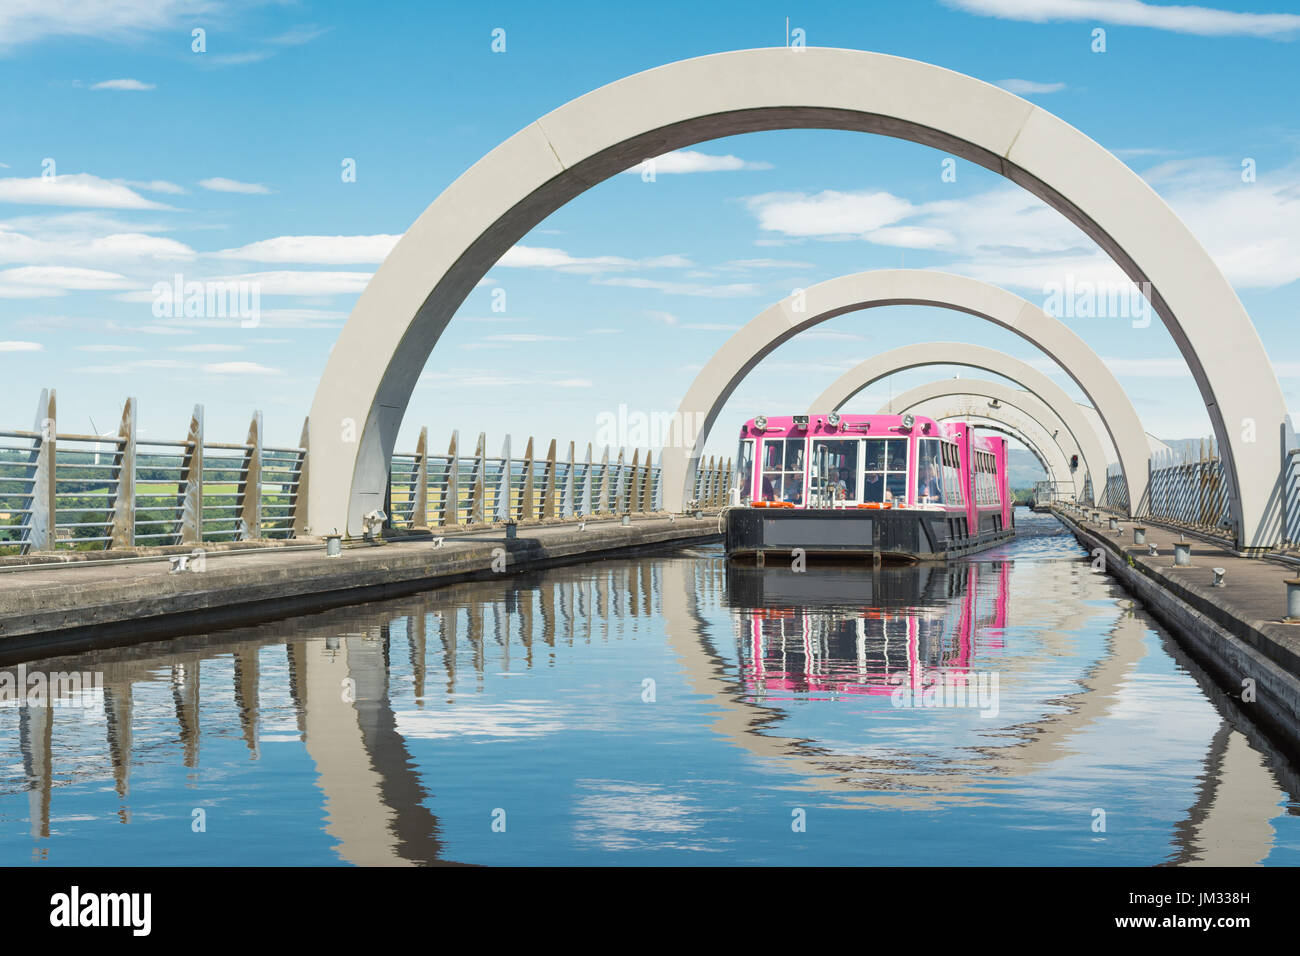 The Falkirk Wheel - boat trip at the top of the wheel - Stock Image